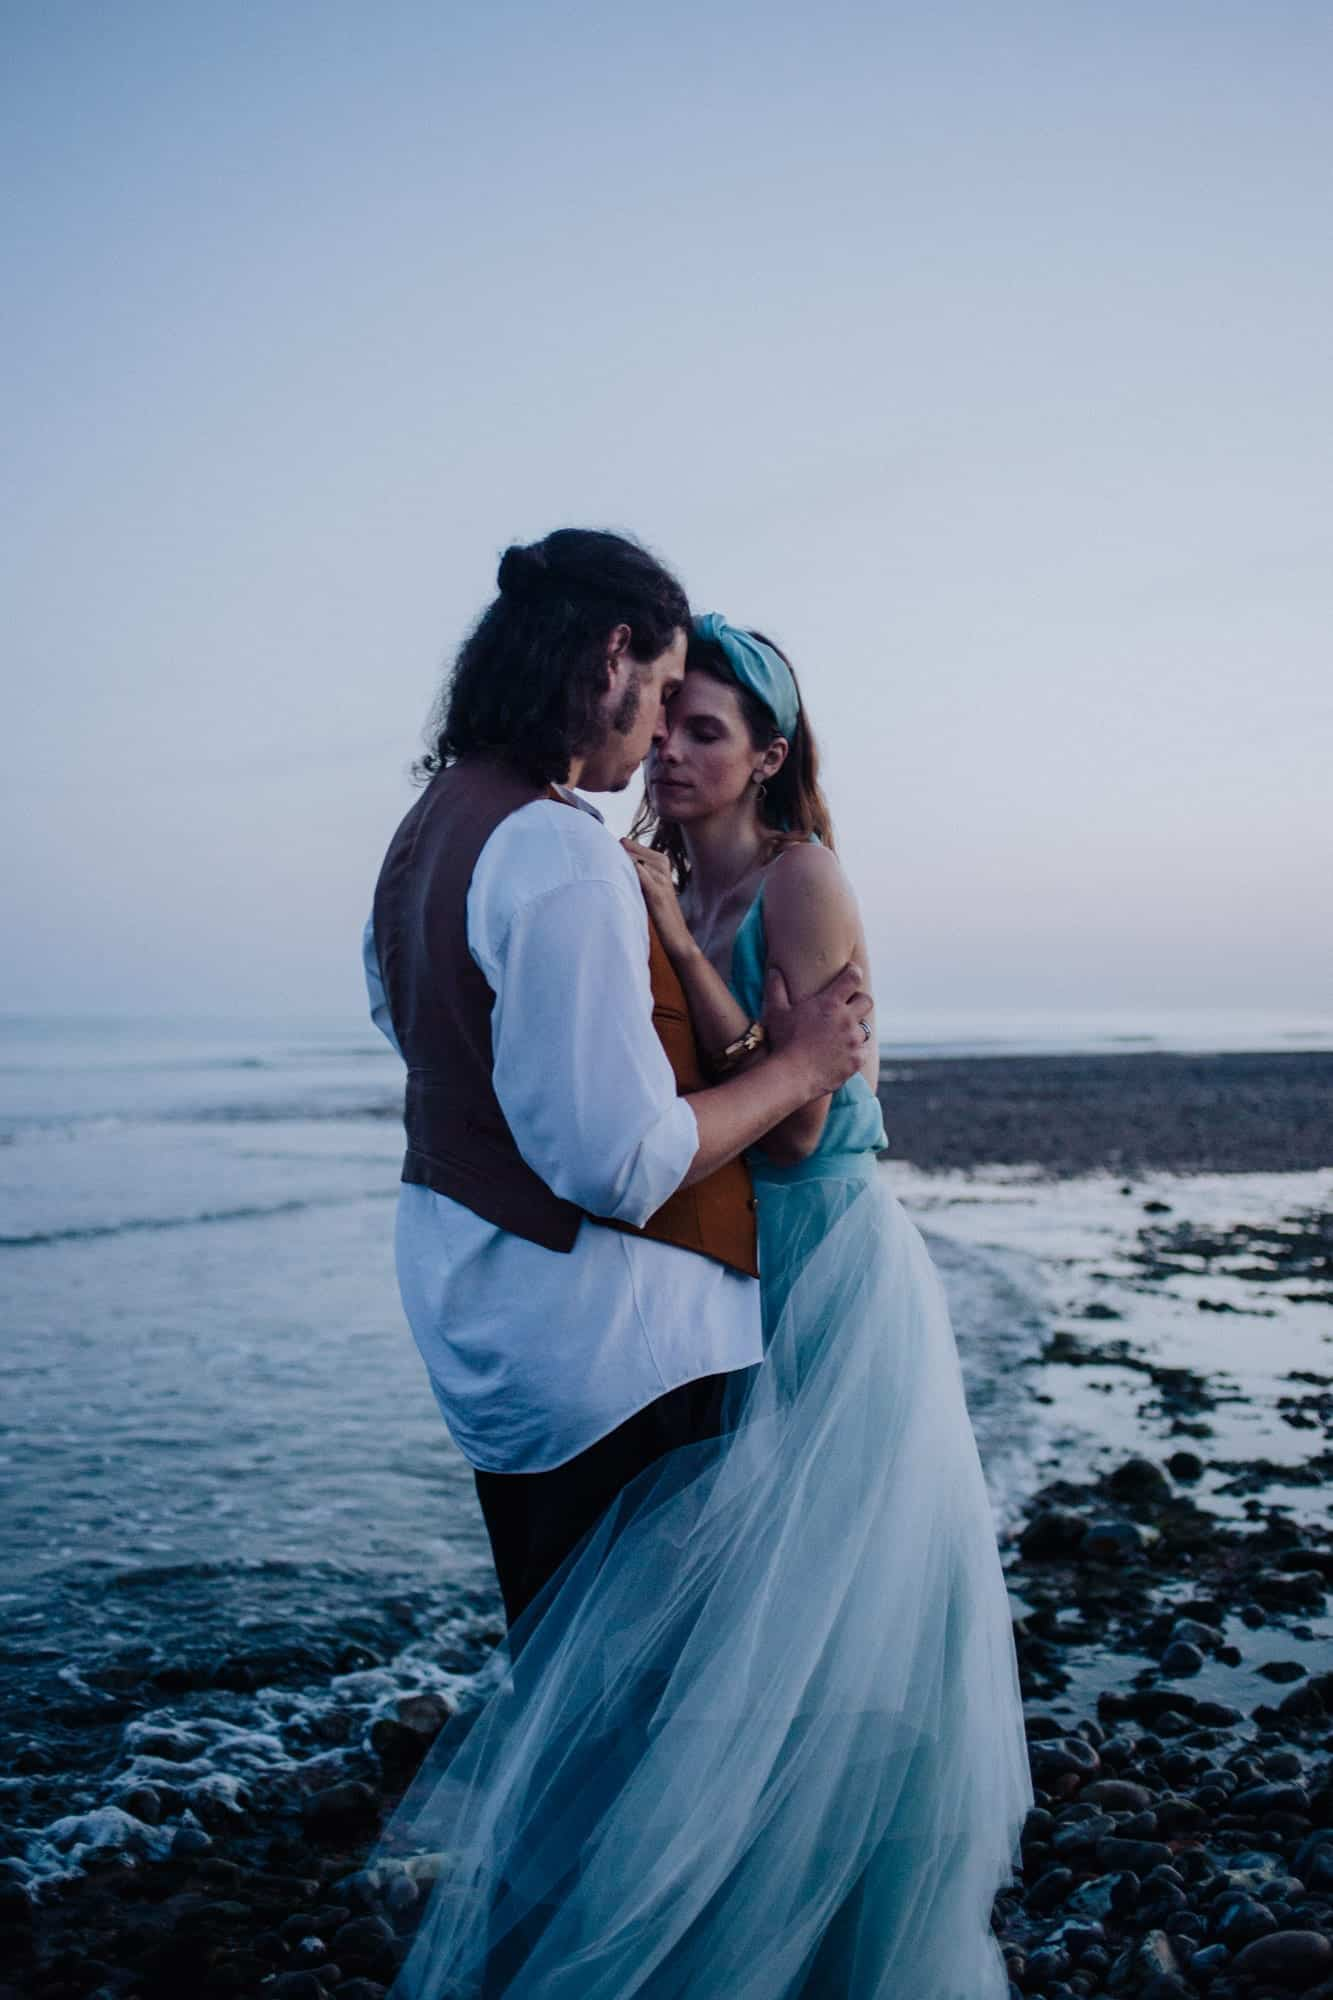 Wedding photo by the water's edge at Seven Sisters for a coastal elopement